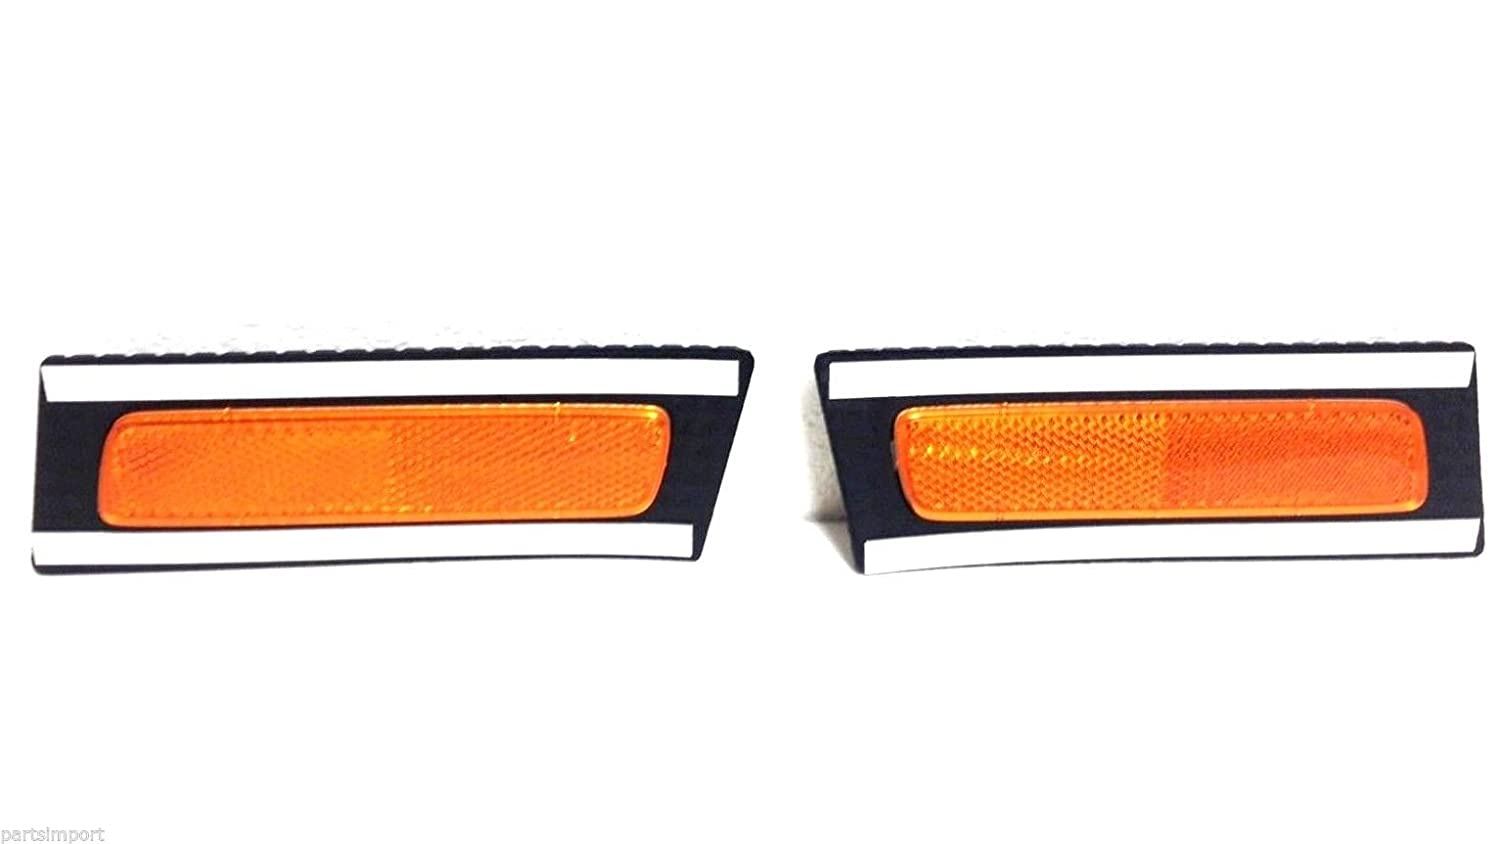 Audi A4 S4 Set of 2 Front (Left + Right) OEM Bumper Cover Reflectors Lights New OEM (FER)